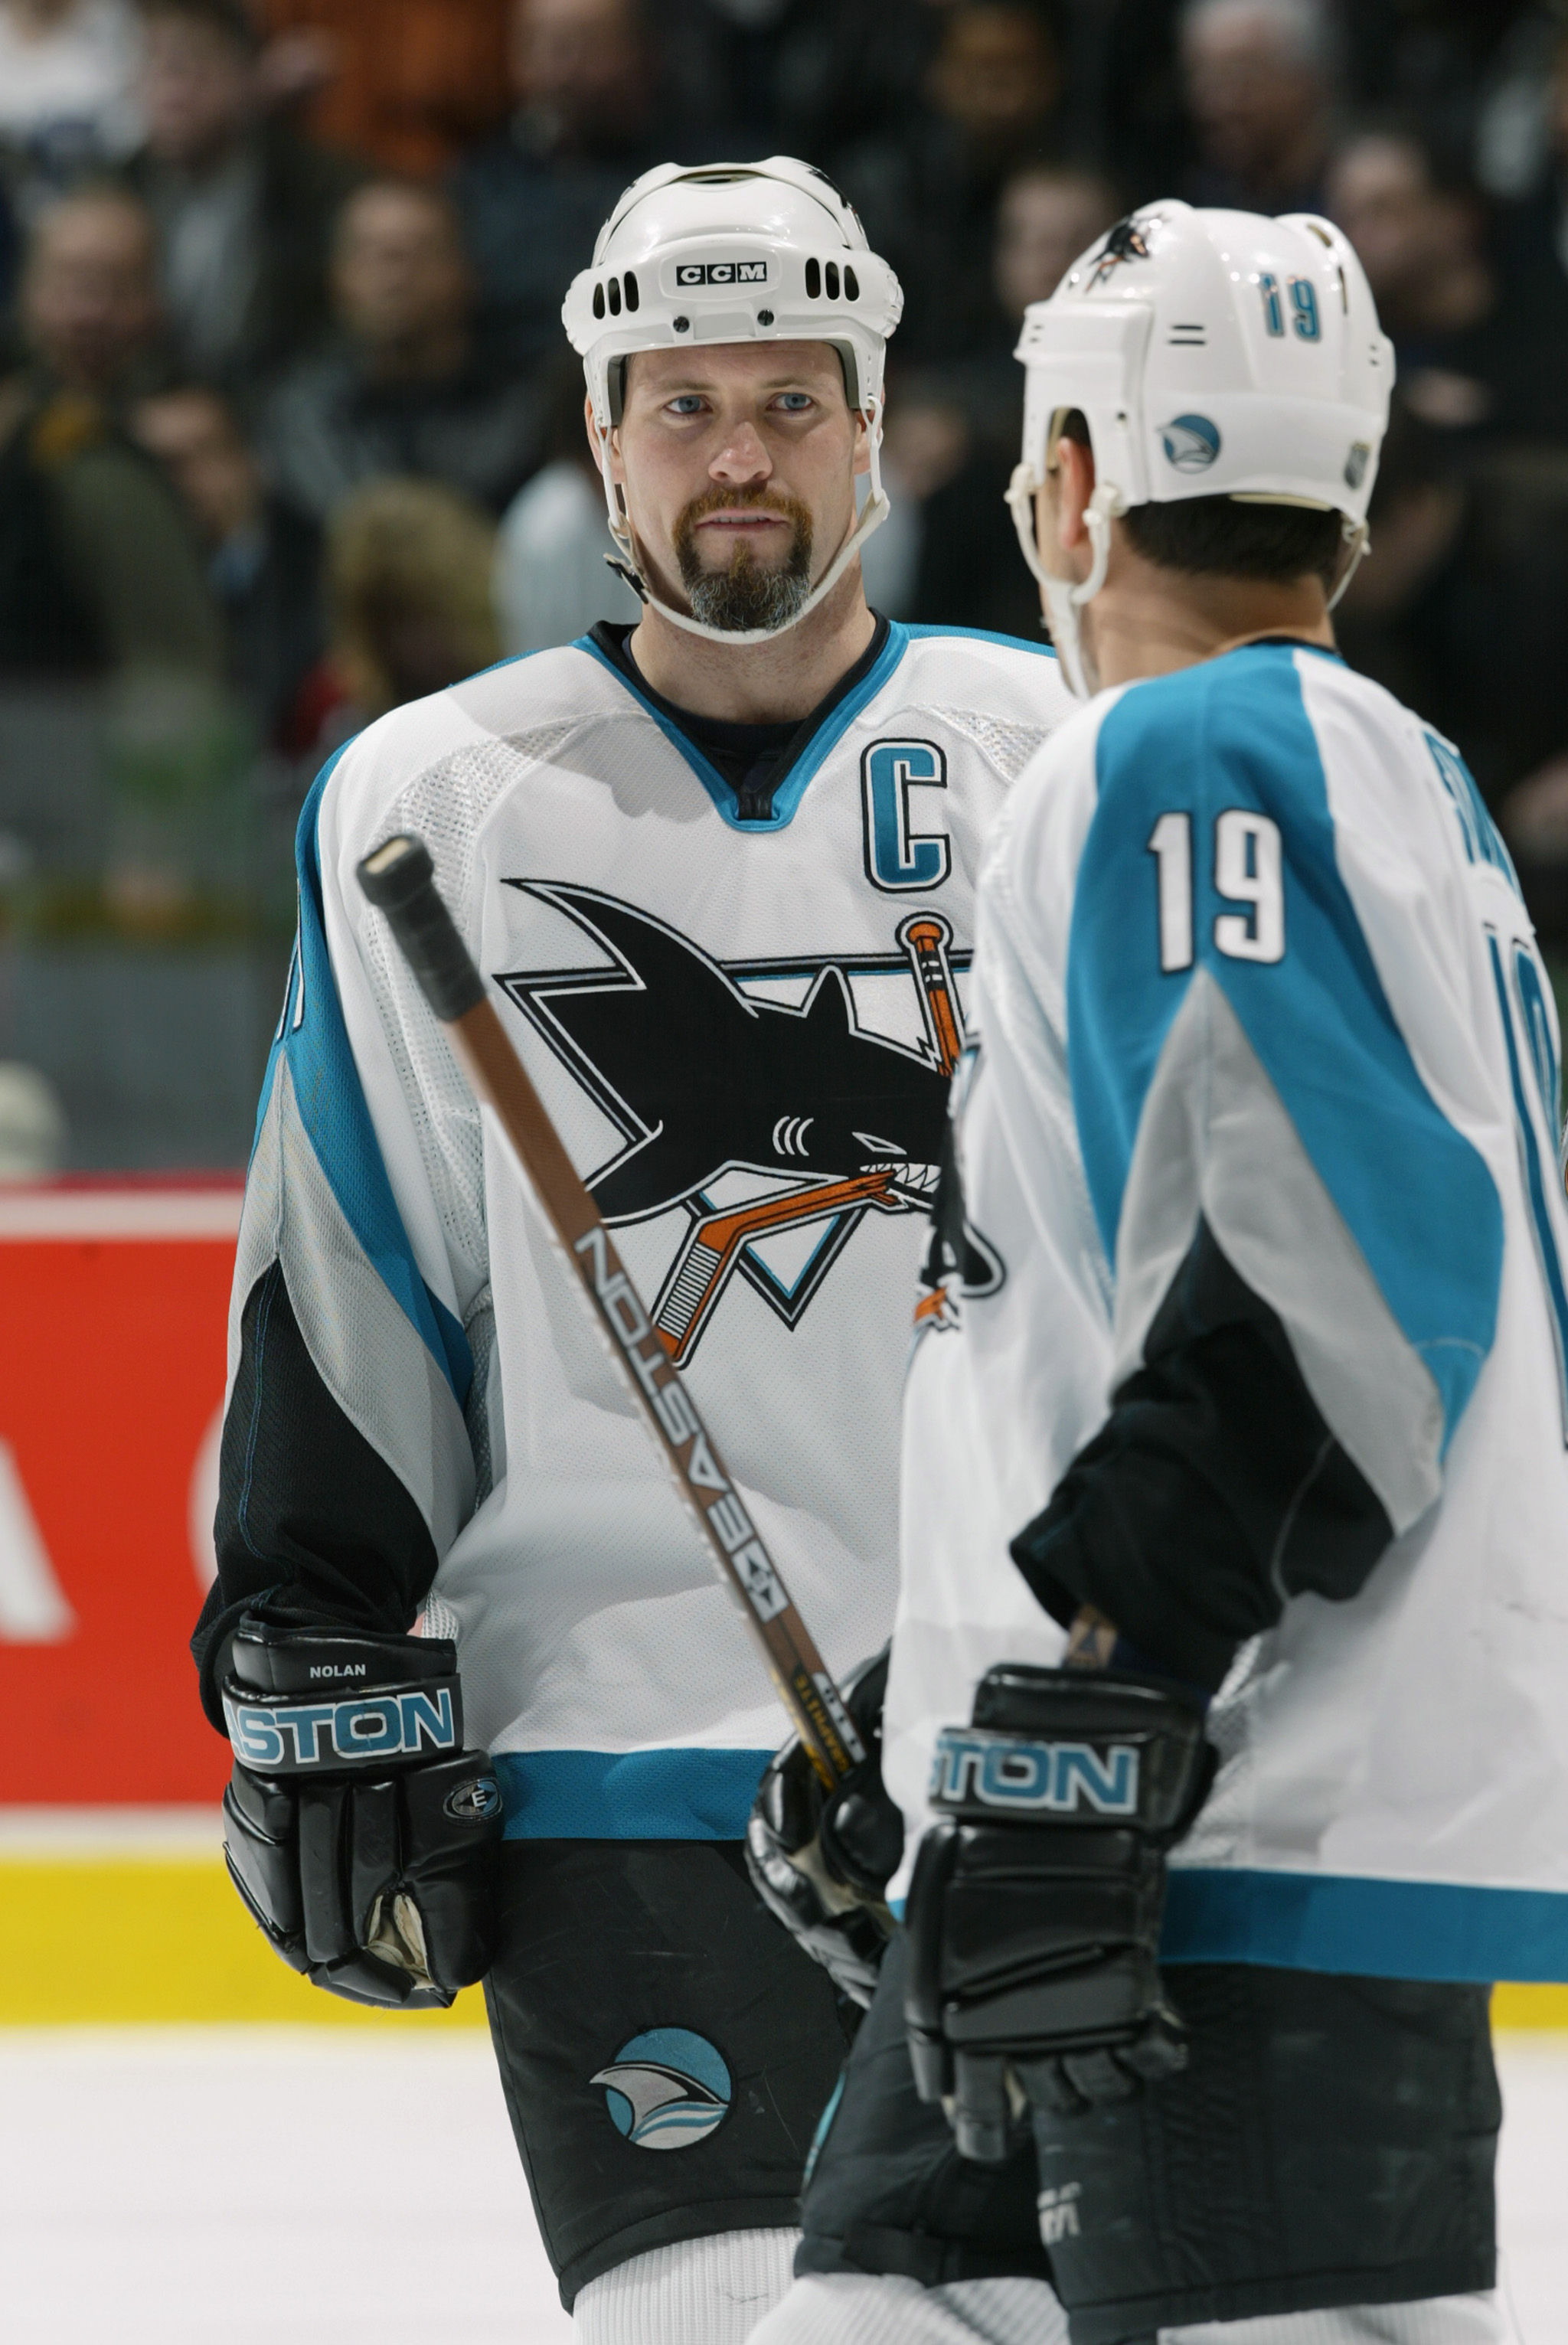 VANCOUVER - FEBRUARY 27:  Owen Nolan #11 of the San Jose Sharks talks with teammate Marco Sturm #19 during the NHL game against the Vancouver Canucks at General Motors Place on February 27, 2003 in Vancouver, Canada.  The Sharks won 3-2 .  (Photo by Jeff